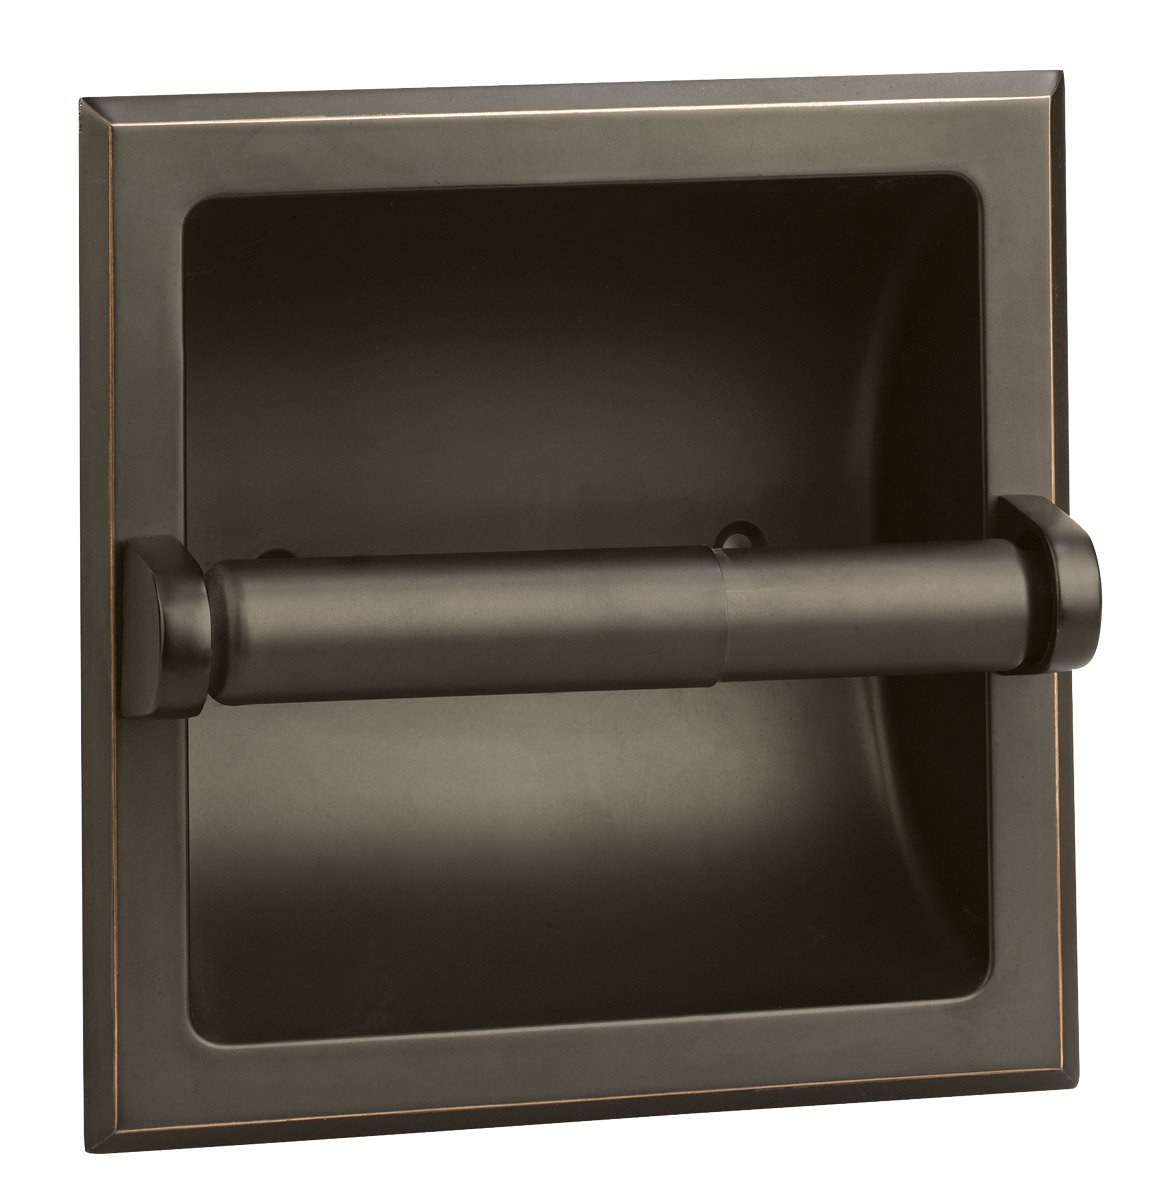 Design House 539254 TP Holders, Oil Rubbed Bronze by Design House